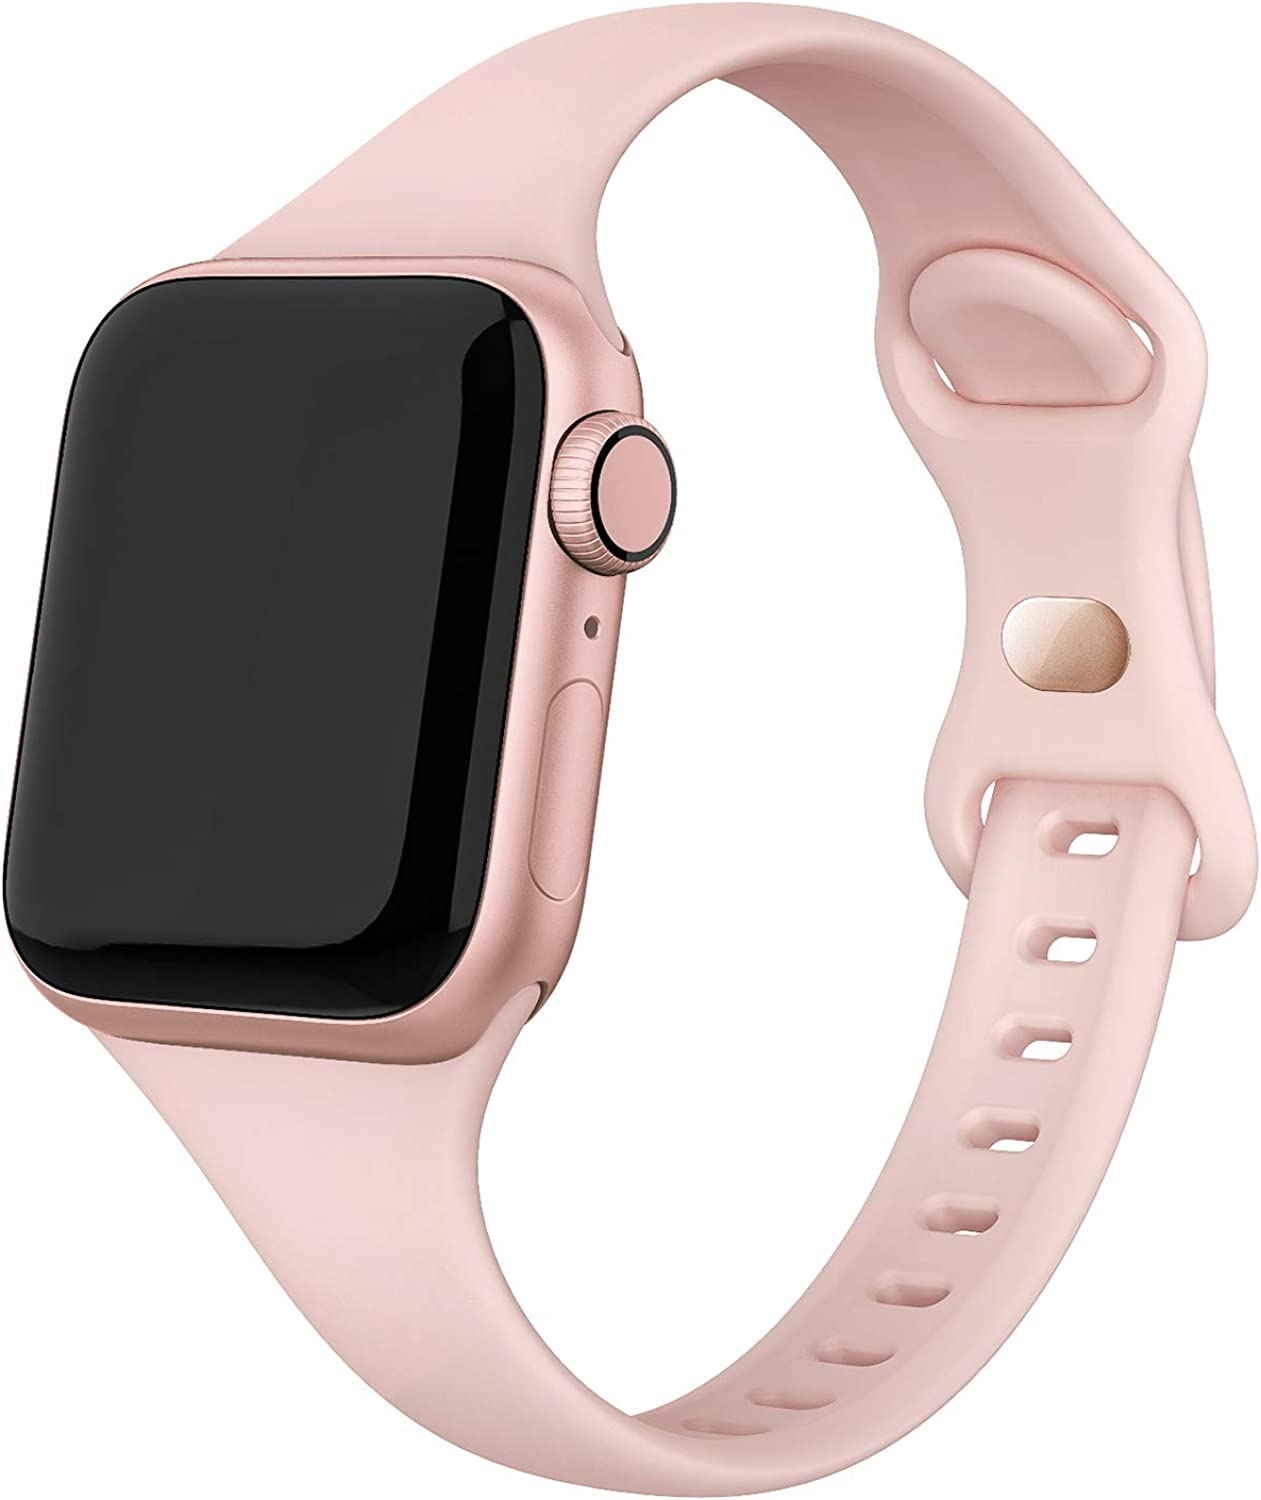 SWEES Sport Band Compatible with iWatch 38mm 40mm 42mm 44mm, Narrow Soft Silicone Slim Thin Small Replacement Wristband Strap Compatible for iWatch Series 6 5 4 3 2 1 SE Sport Edition Women Men